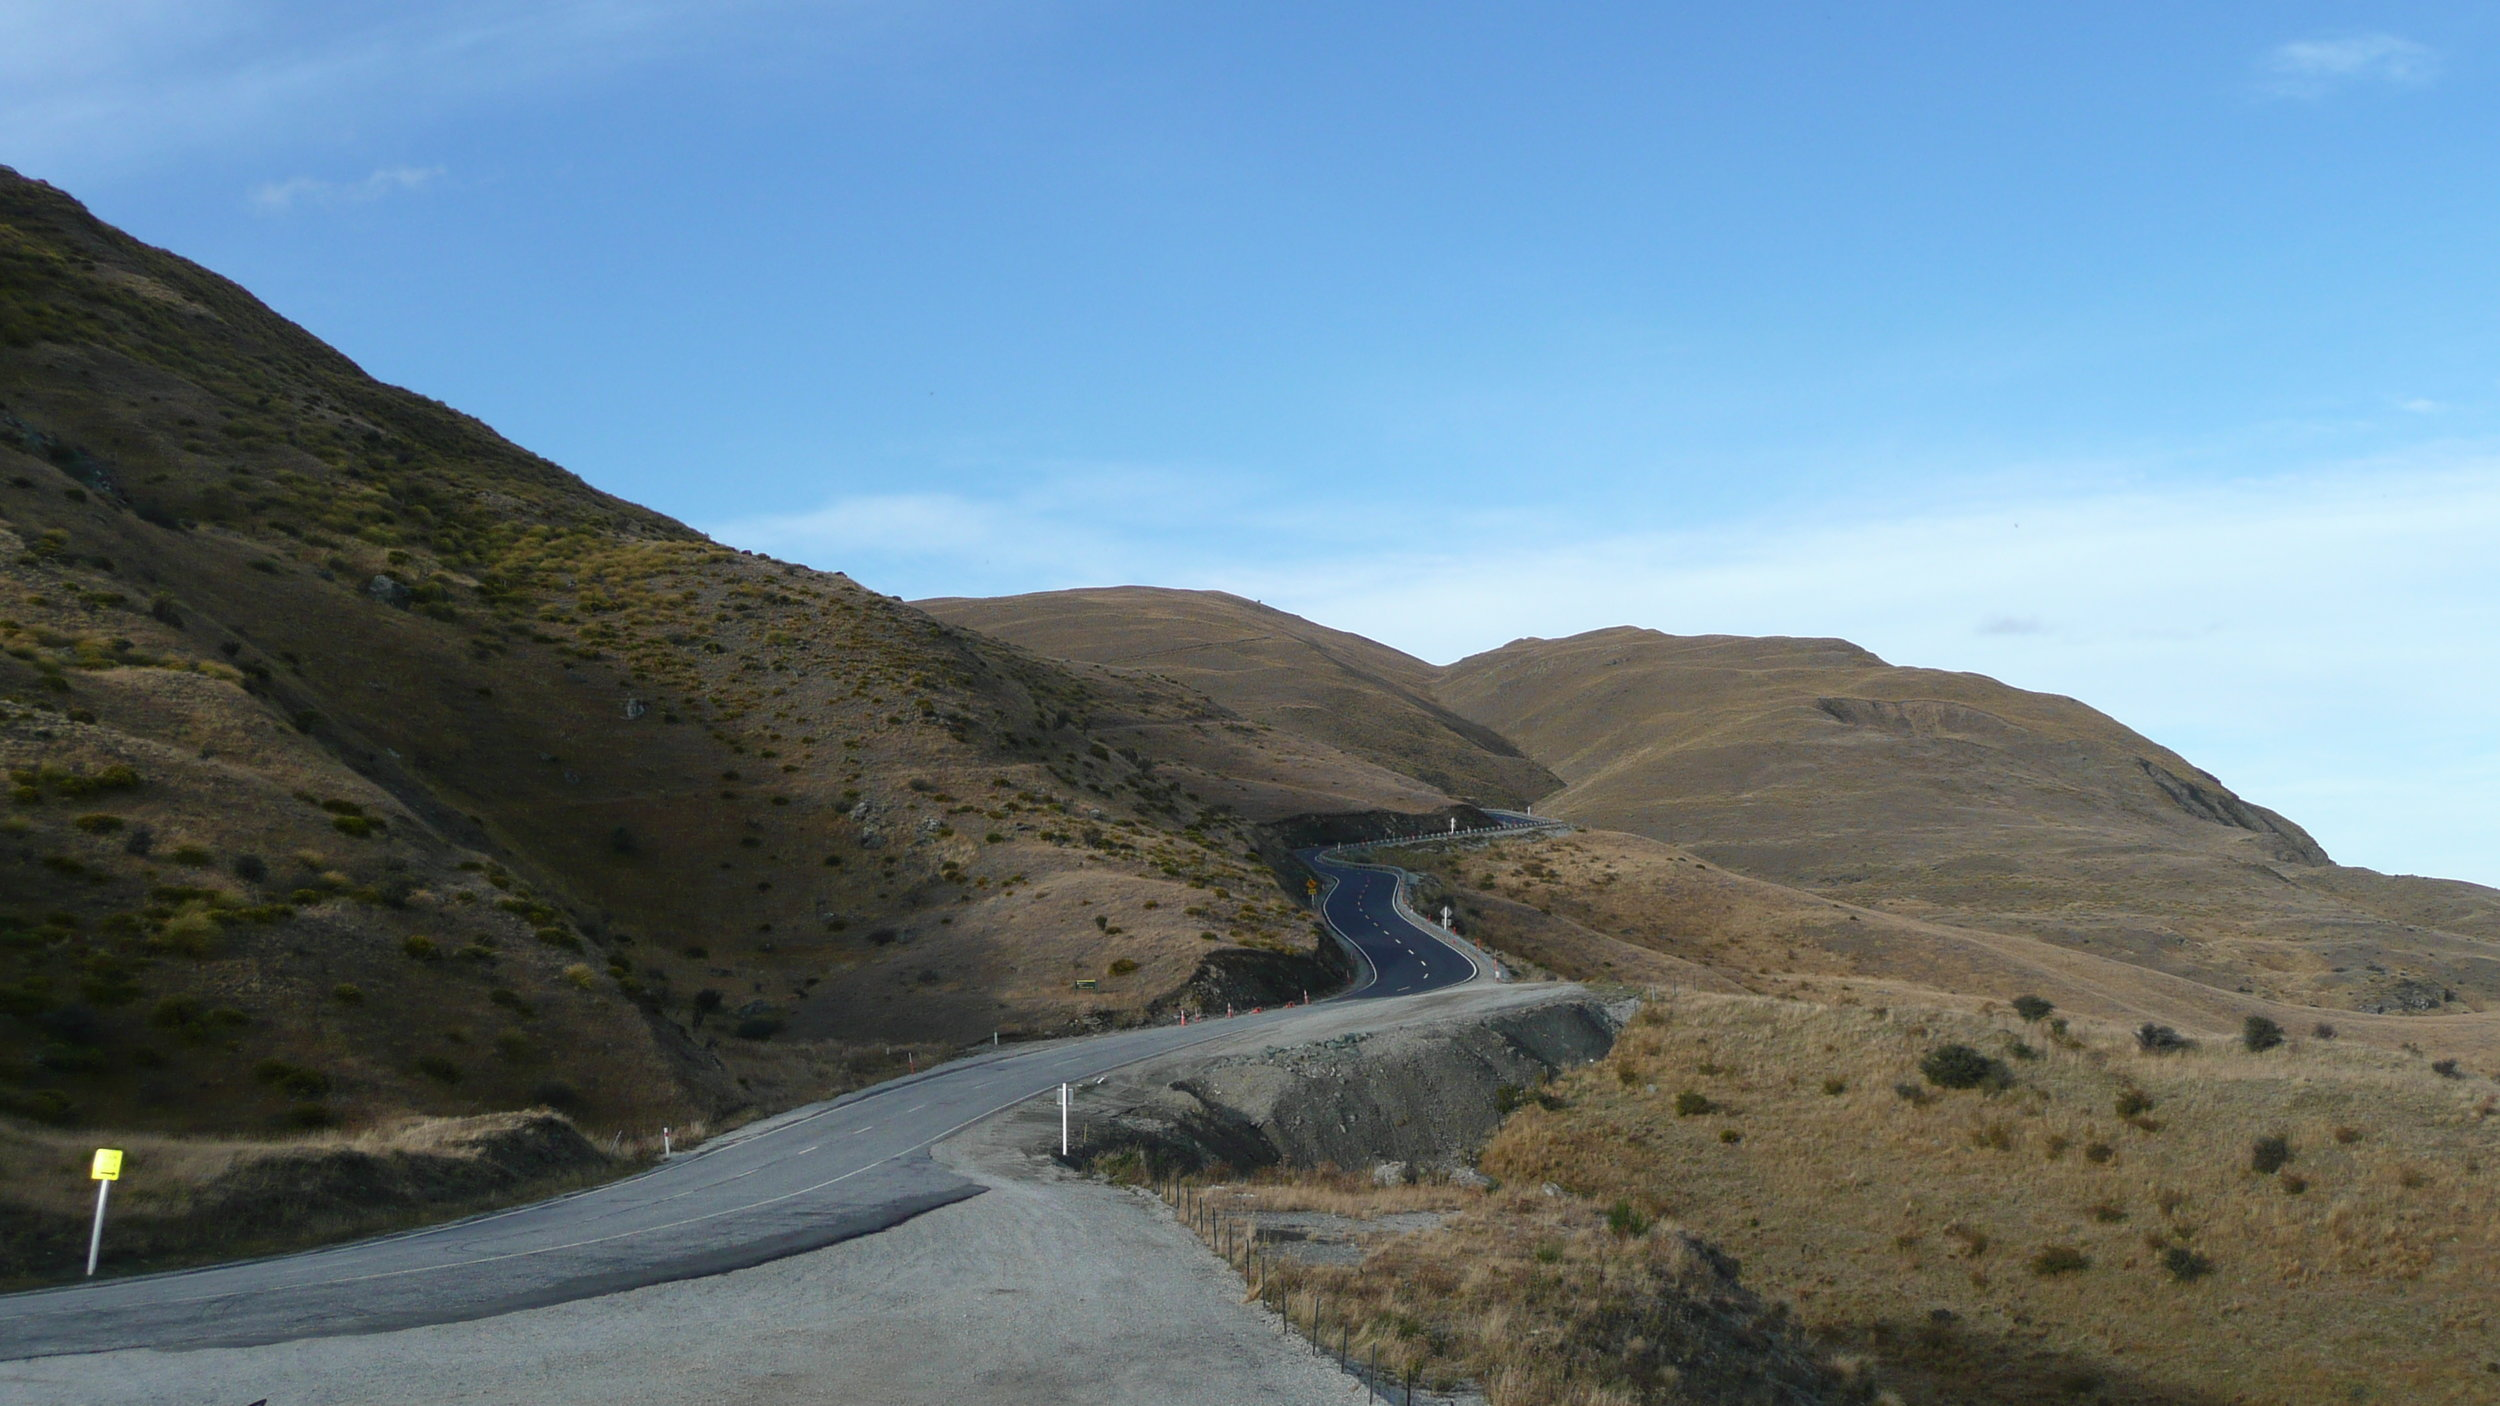 Roads in New Zealand can be steep and curvy